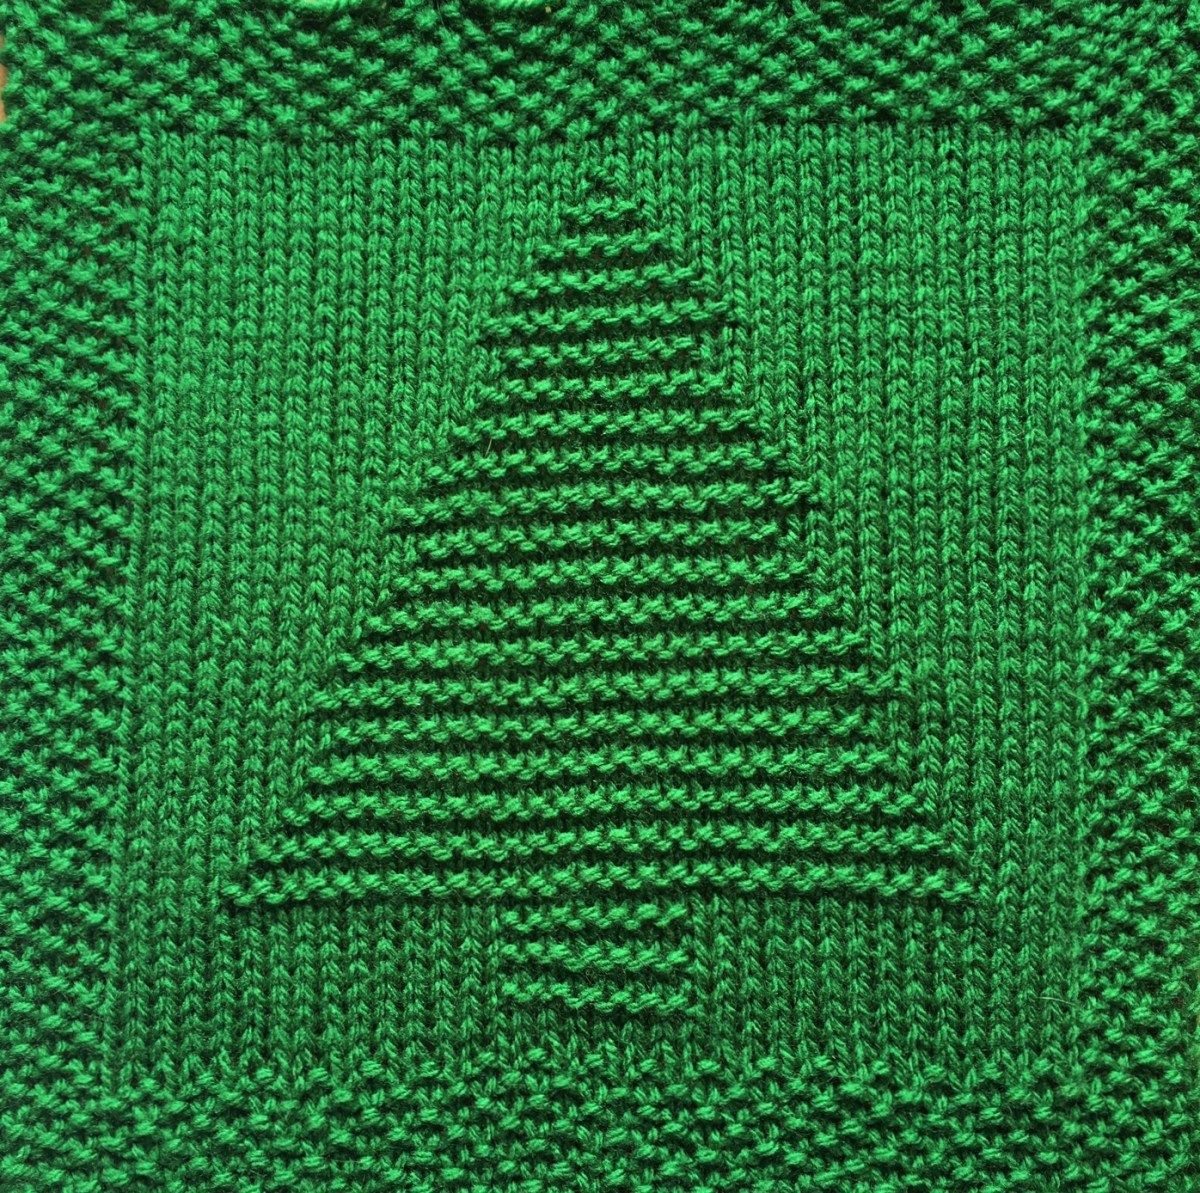 Free Christmas Tree Dishcloth Or Afghan Square Knitted Washcloth Patterns Christmas Tree Knitting Pattern Dishcloth Patterns Free